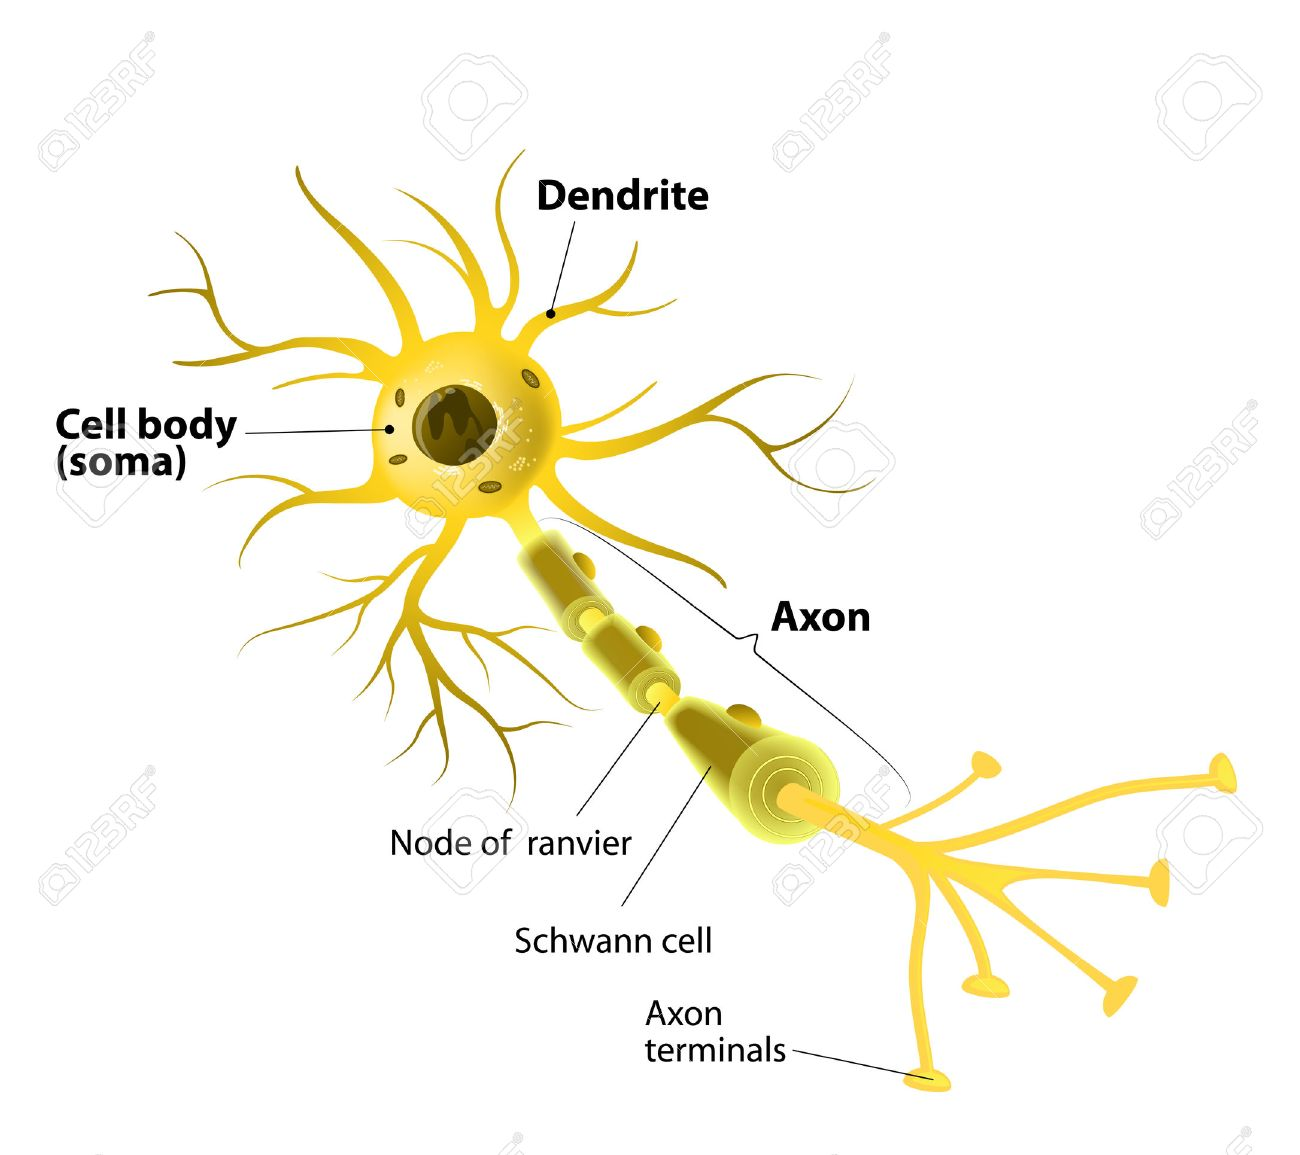 Neuron And Synapse Labeled Diagram Royalty Free Cliparts, Vectors ...